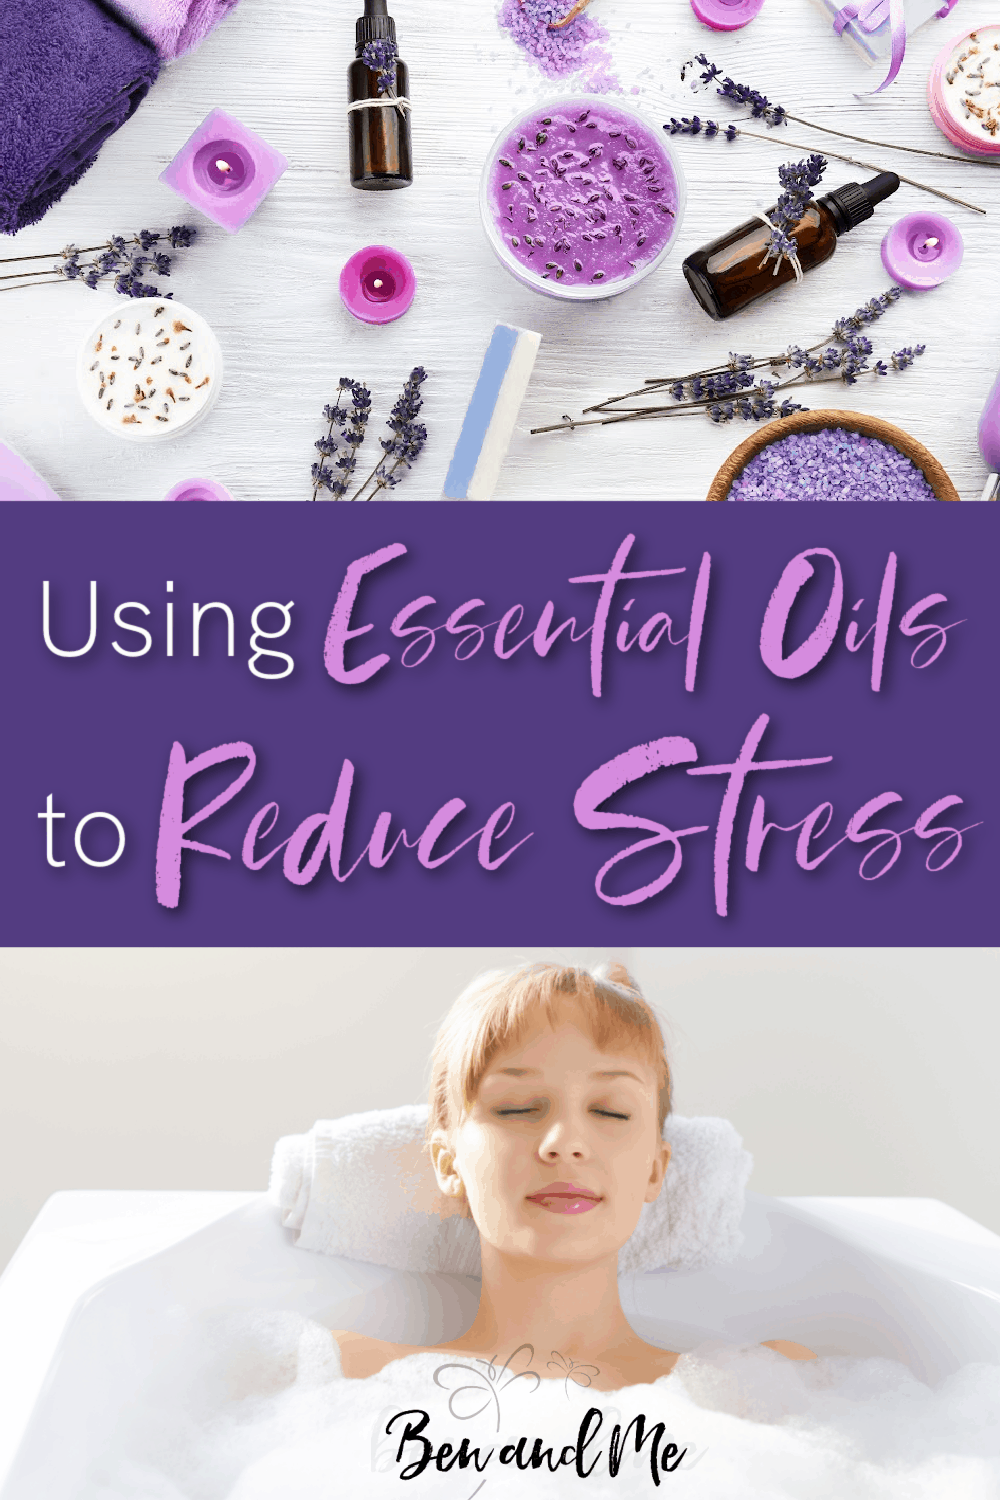 Using essential oils to reduce stress is as simple as a warm bath. Learn some of the best essential oils to use to help you relax. #aromatheraphy #essentialoils #reducestress #stessrelief #howtouseessentialoils #simplyearth